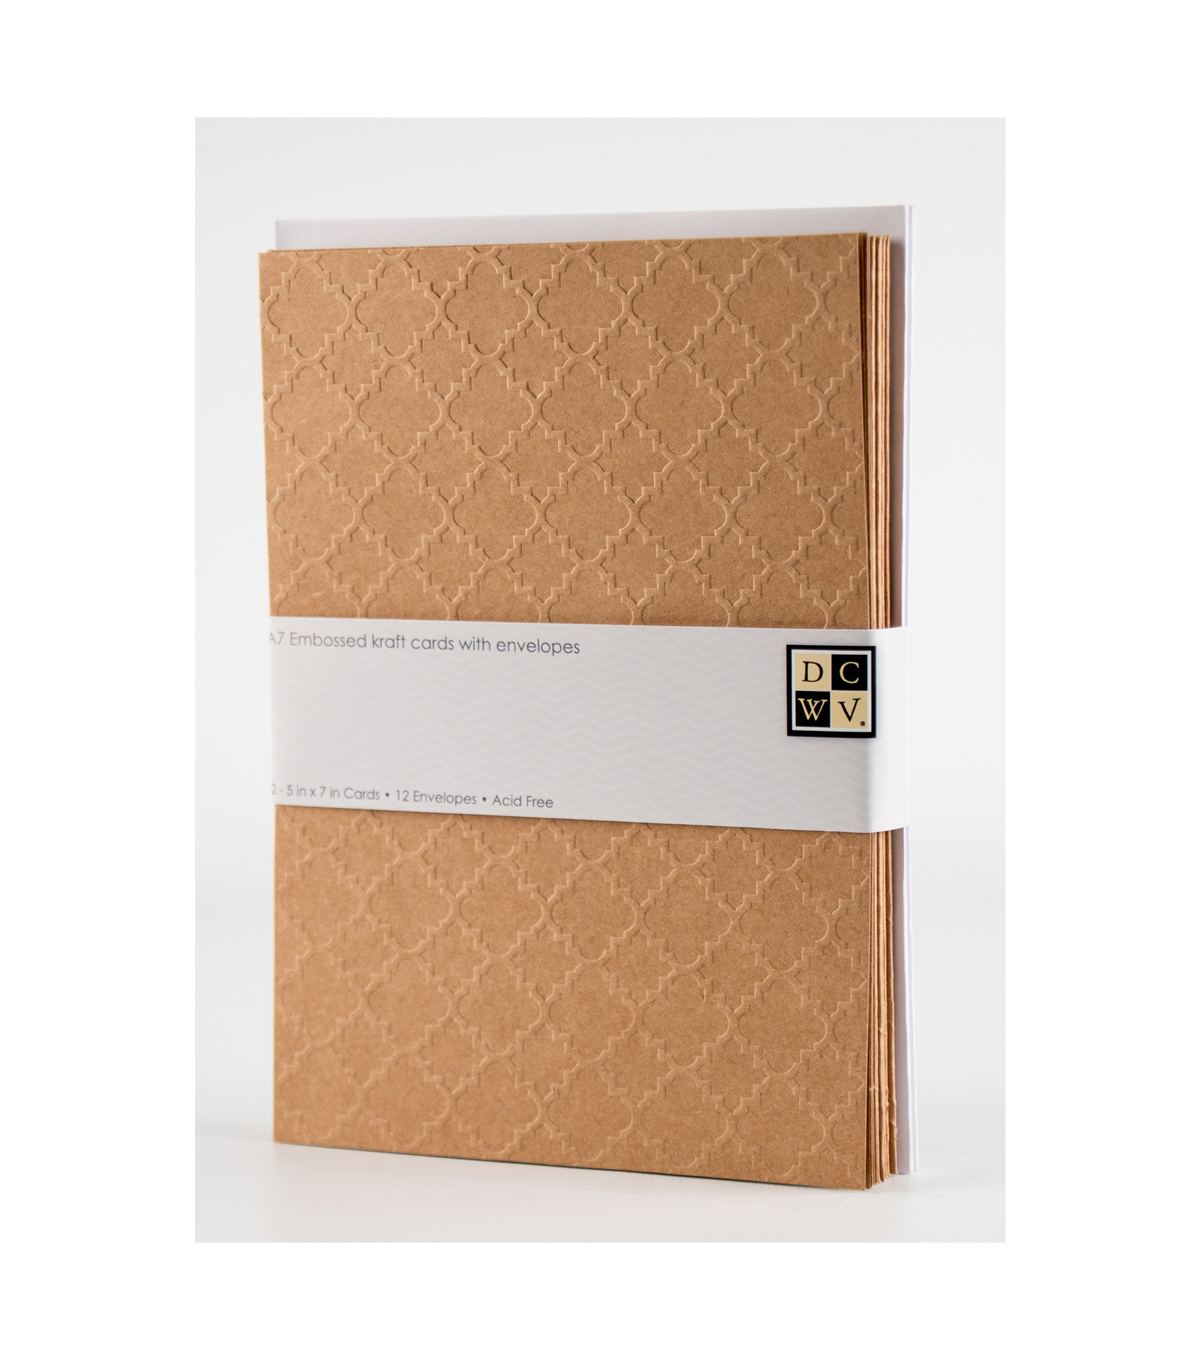 DCWV A7 12 pack card and envelope set: Embossed Kraft cards